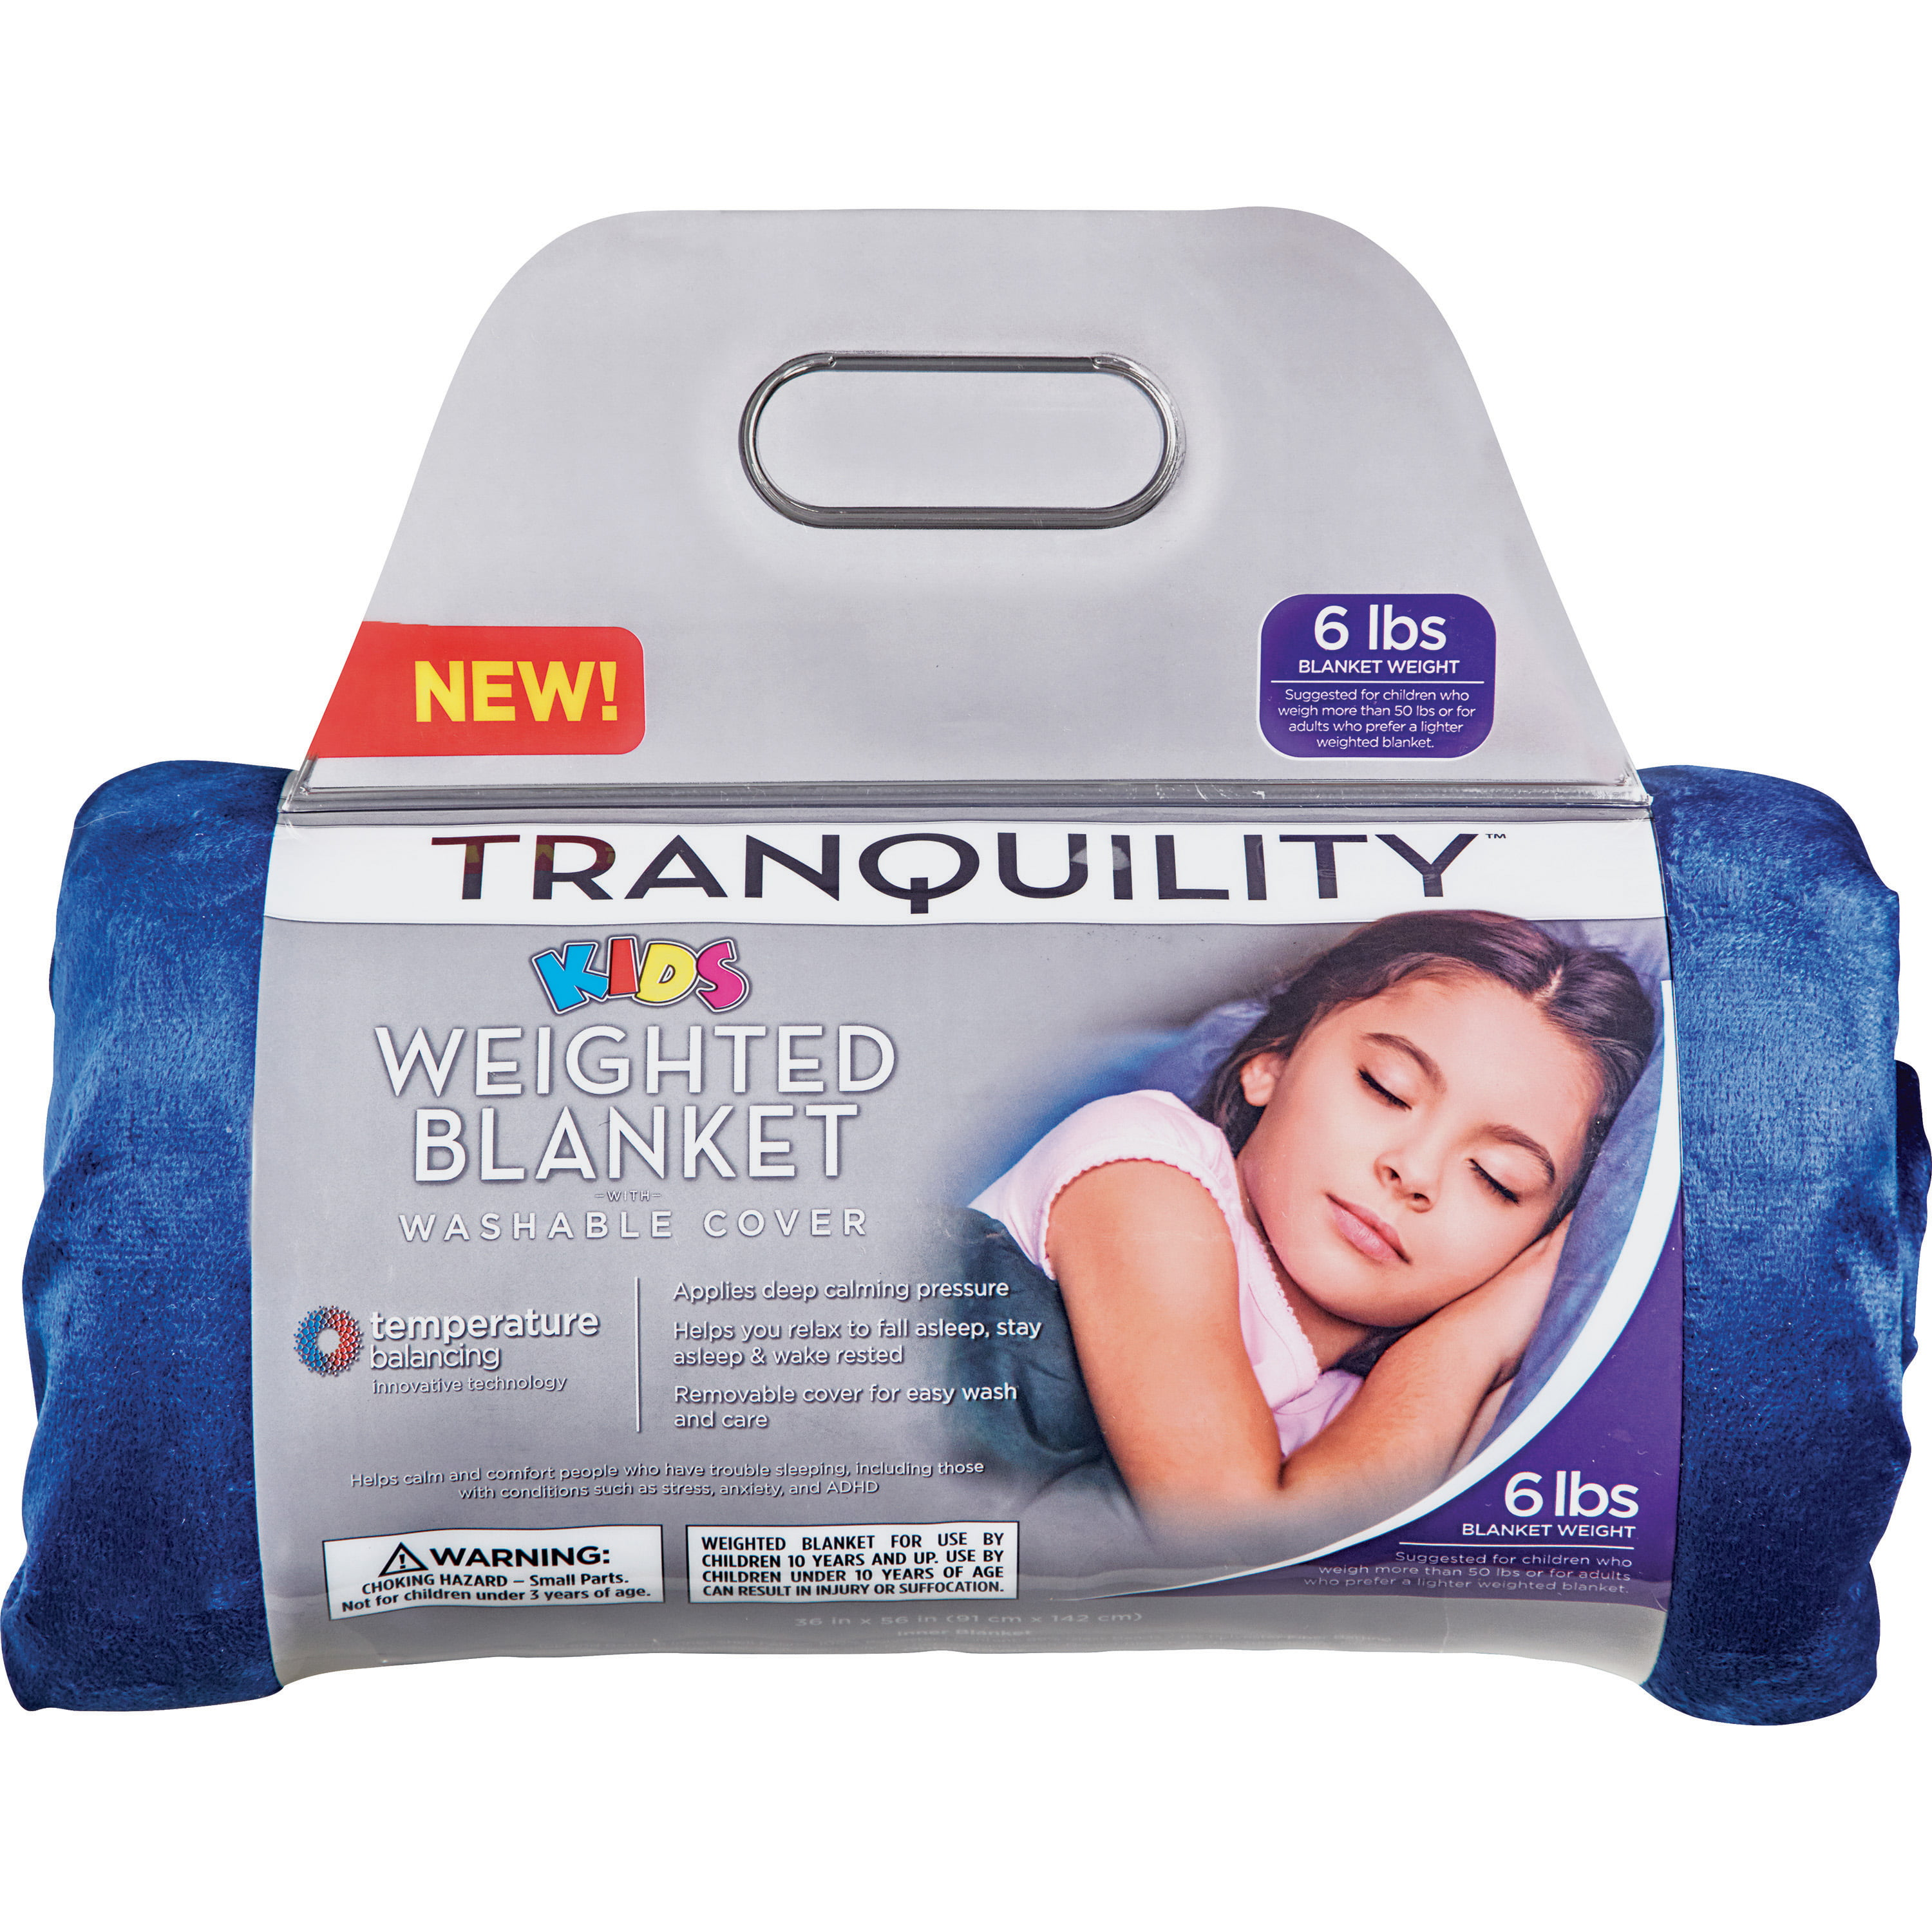 Tranquility Kid S Weighted Blanket 6lbs With Washable Cover Blue Walmart Com Walmart Com